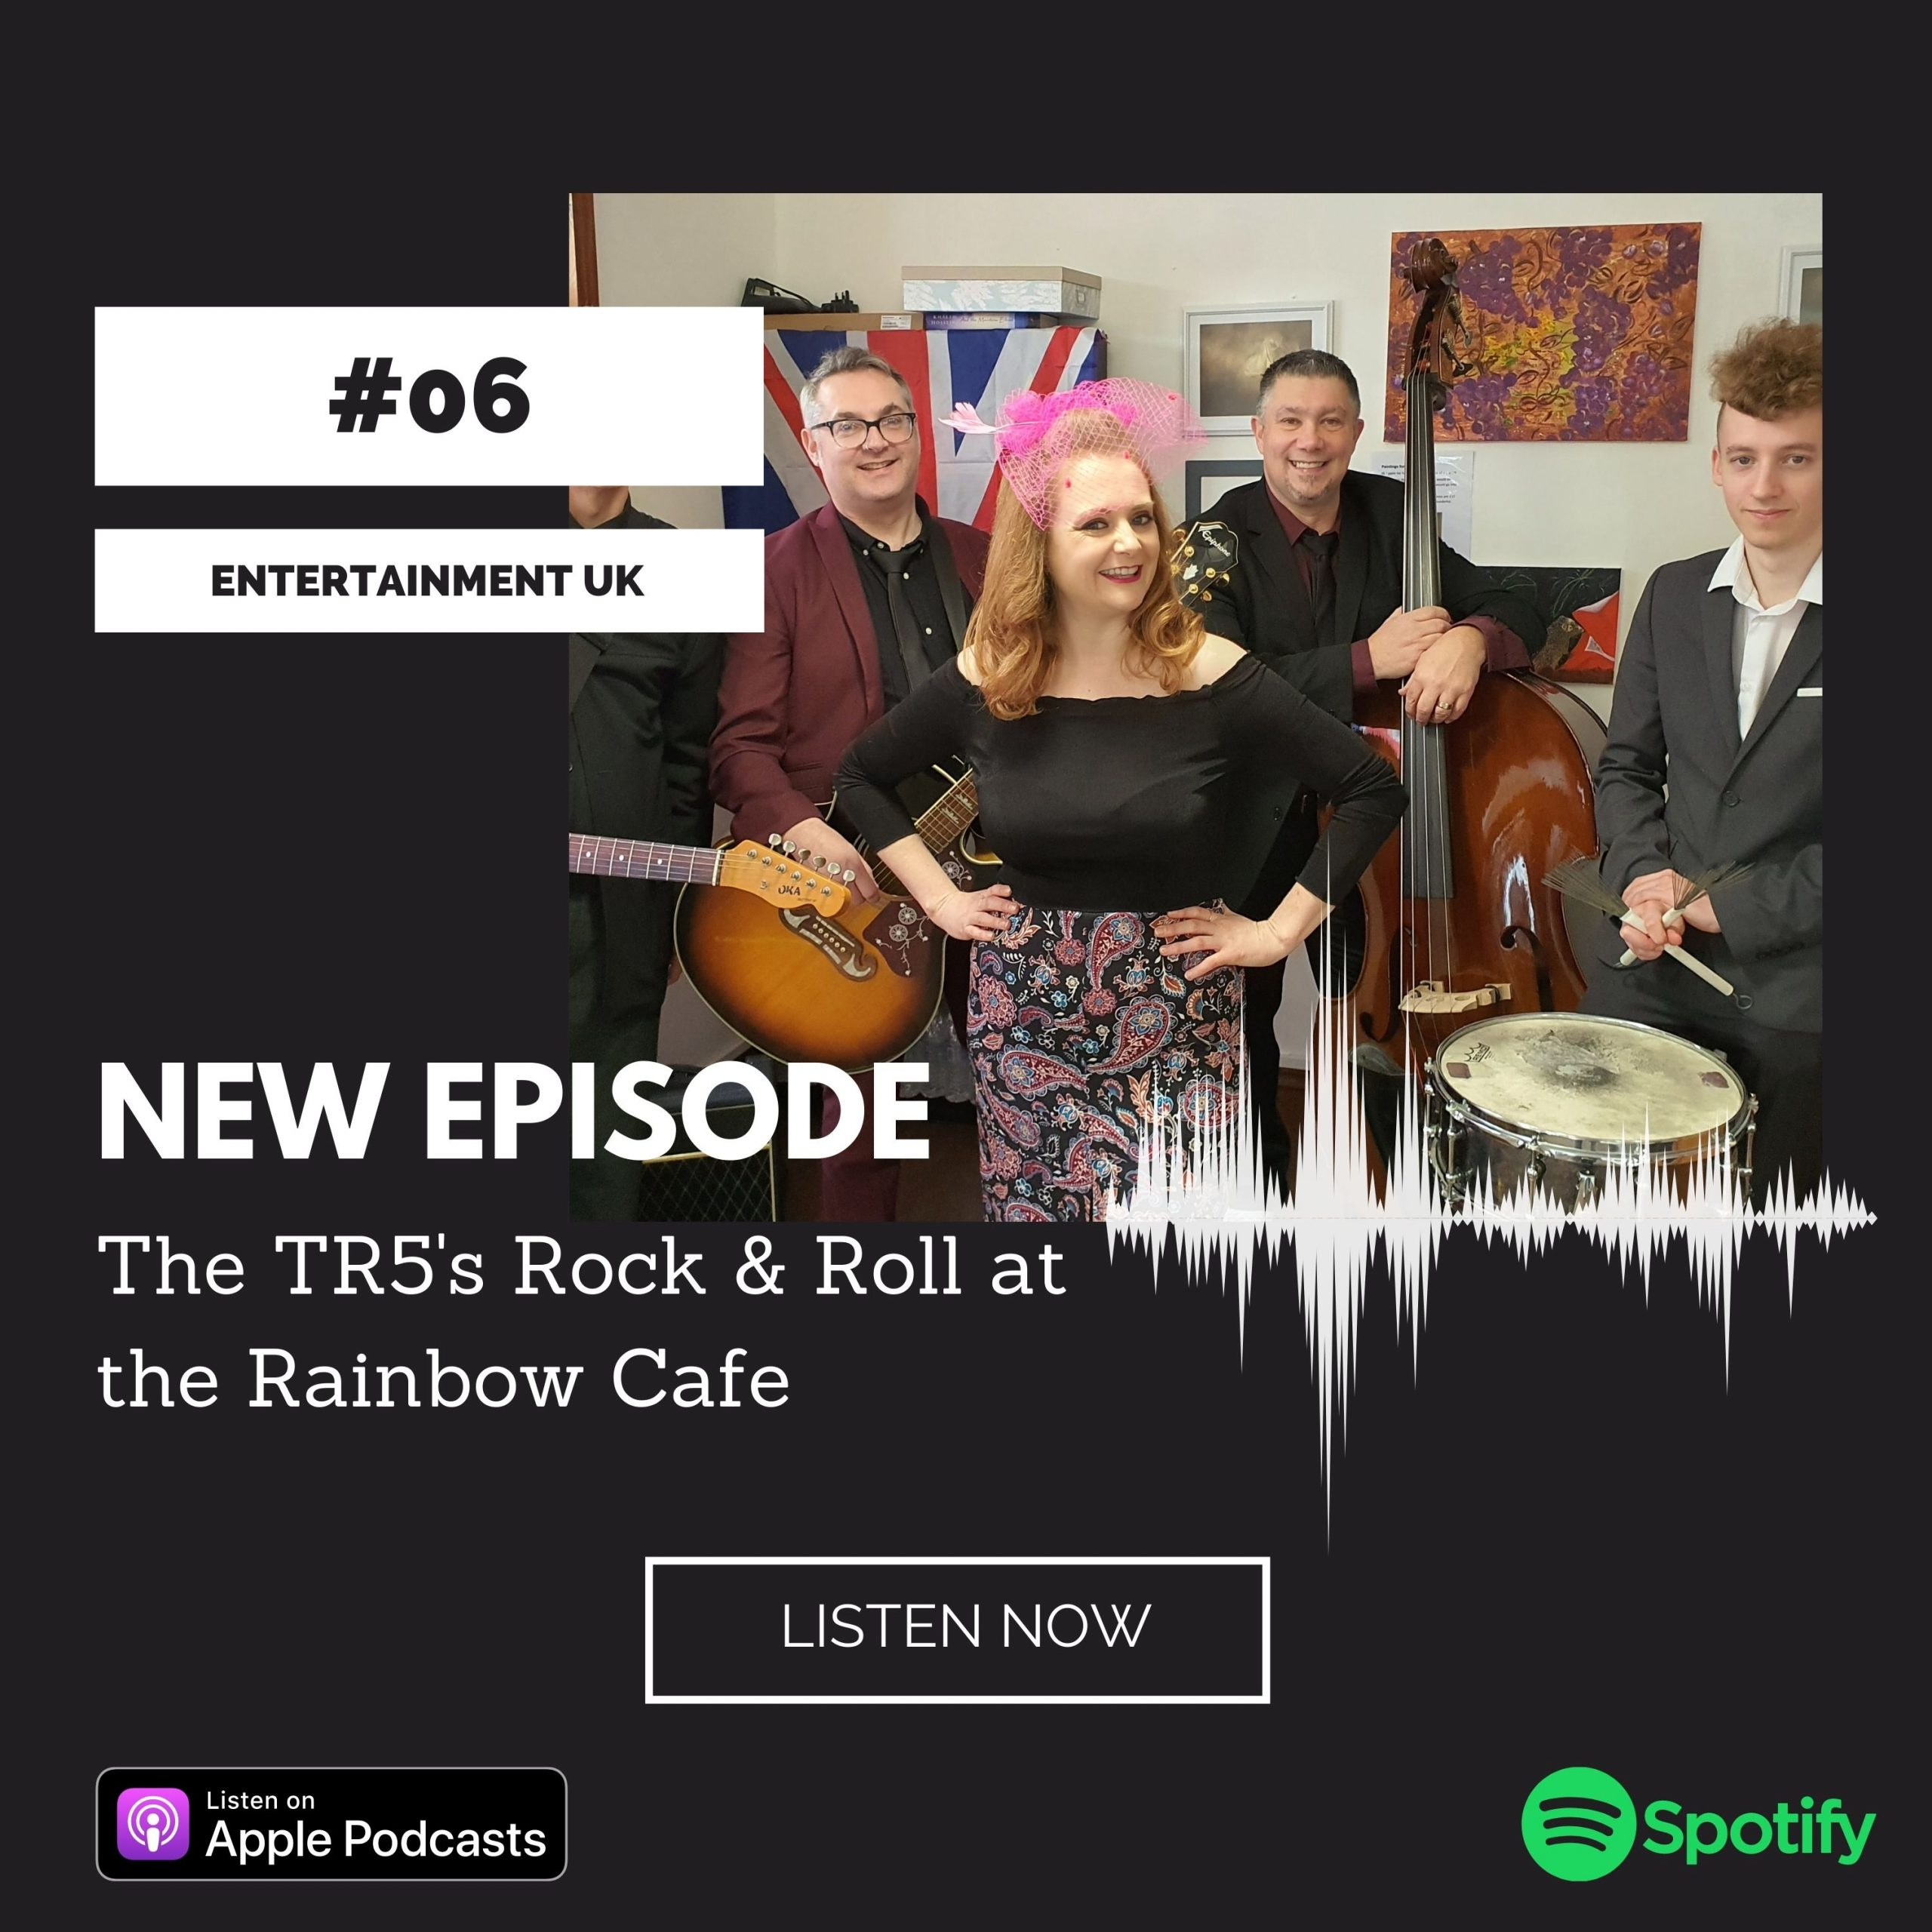 The TR5's Rock & Roll at the Rainbow Cafe